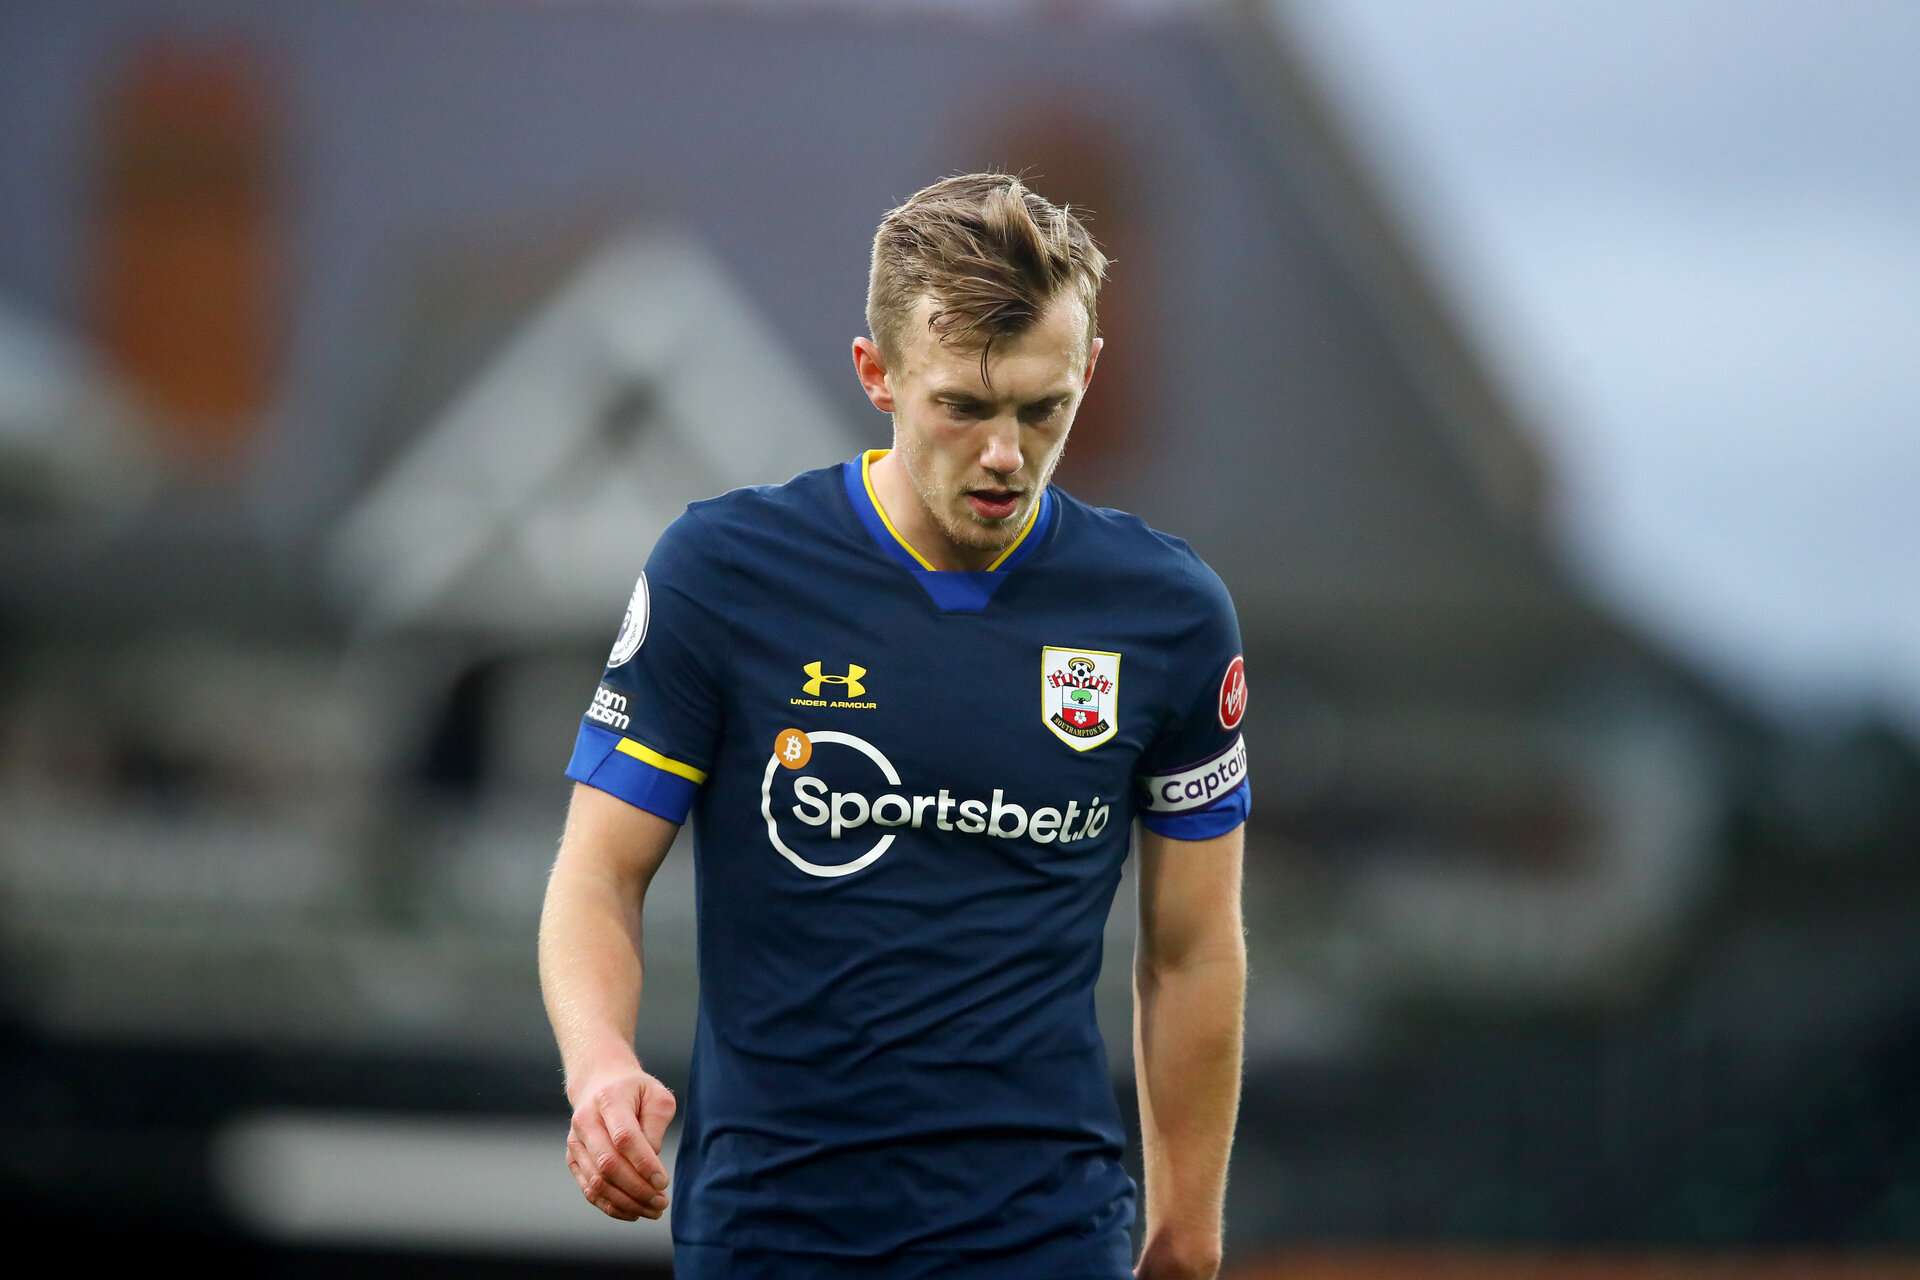 LONDON, ENGLAND - DECEMBER 26: James Ward-Prowse of Southampton during the Premier League match between Fulham and Southampton at Craven Cottage on December 26, 2020 in London, England. The match will be played without fans, behind closed doors as a Covid-19 precaution. (Photo by Matt Watson/Southampton FC via Getty Images)